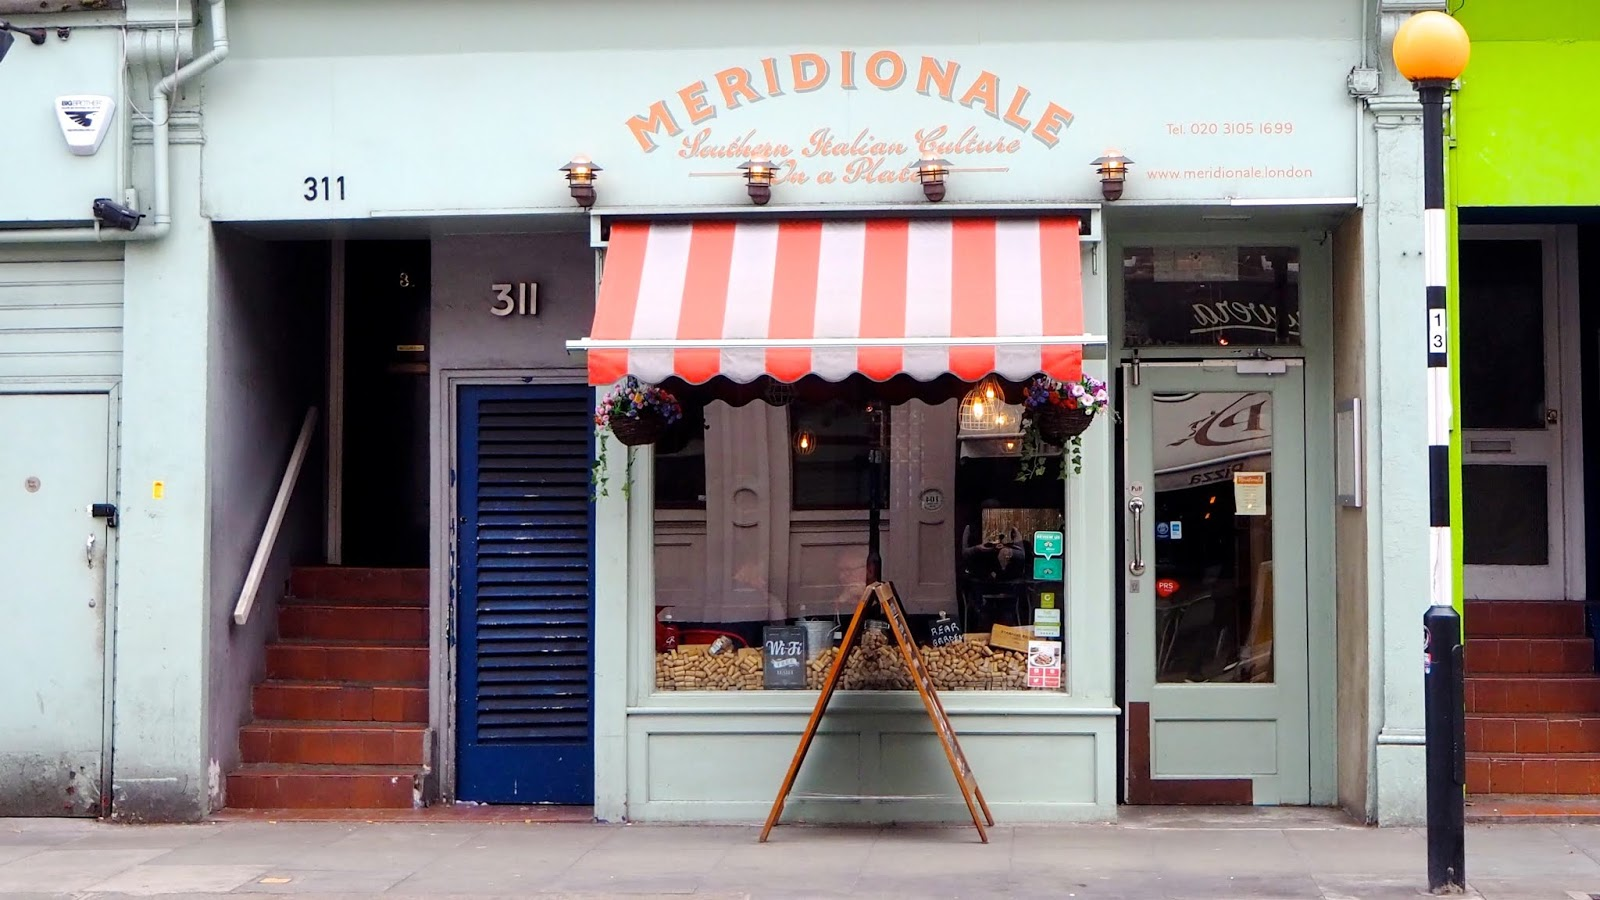 Meridionale Italian Restaurant storefront on Kings Road in Fulham